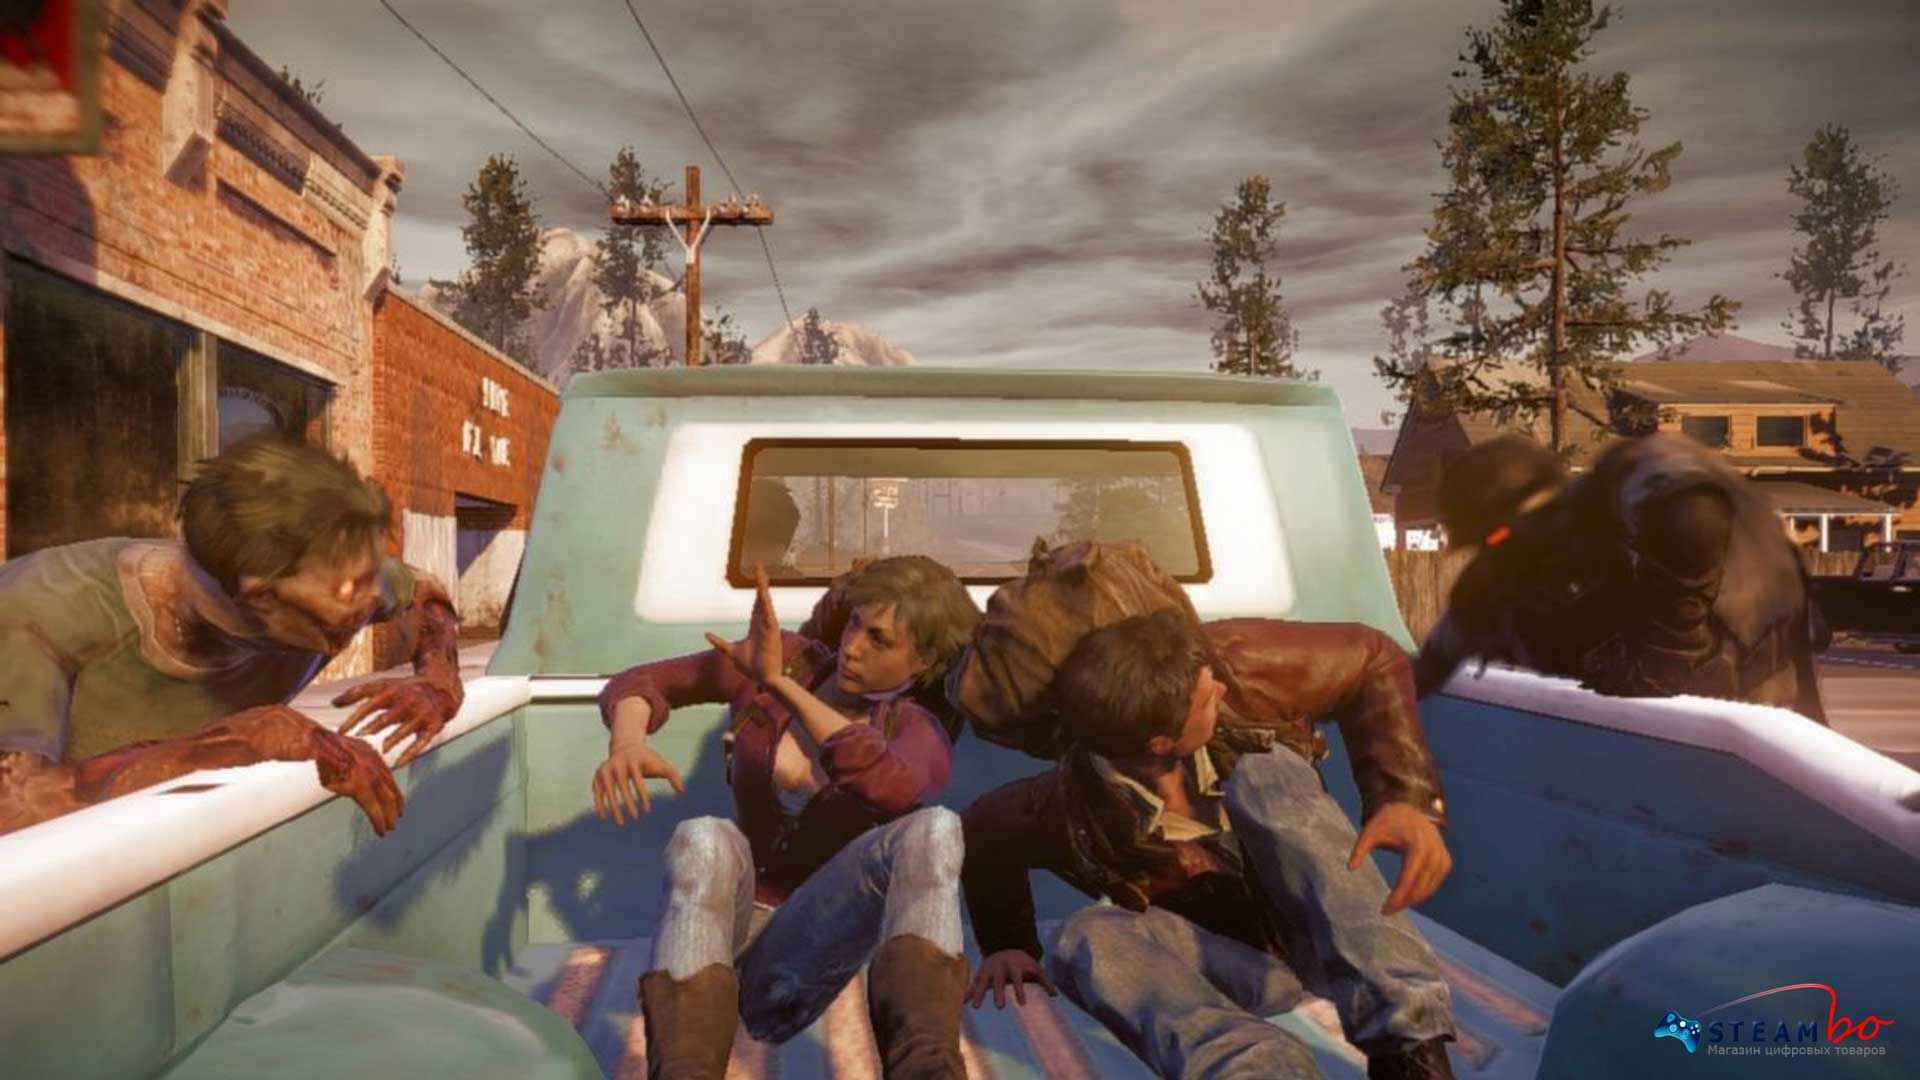 State of Decay Region Free (Steam Gift/Key)